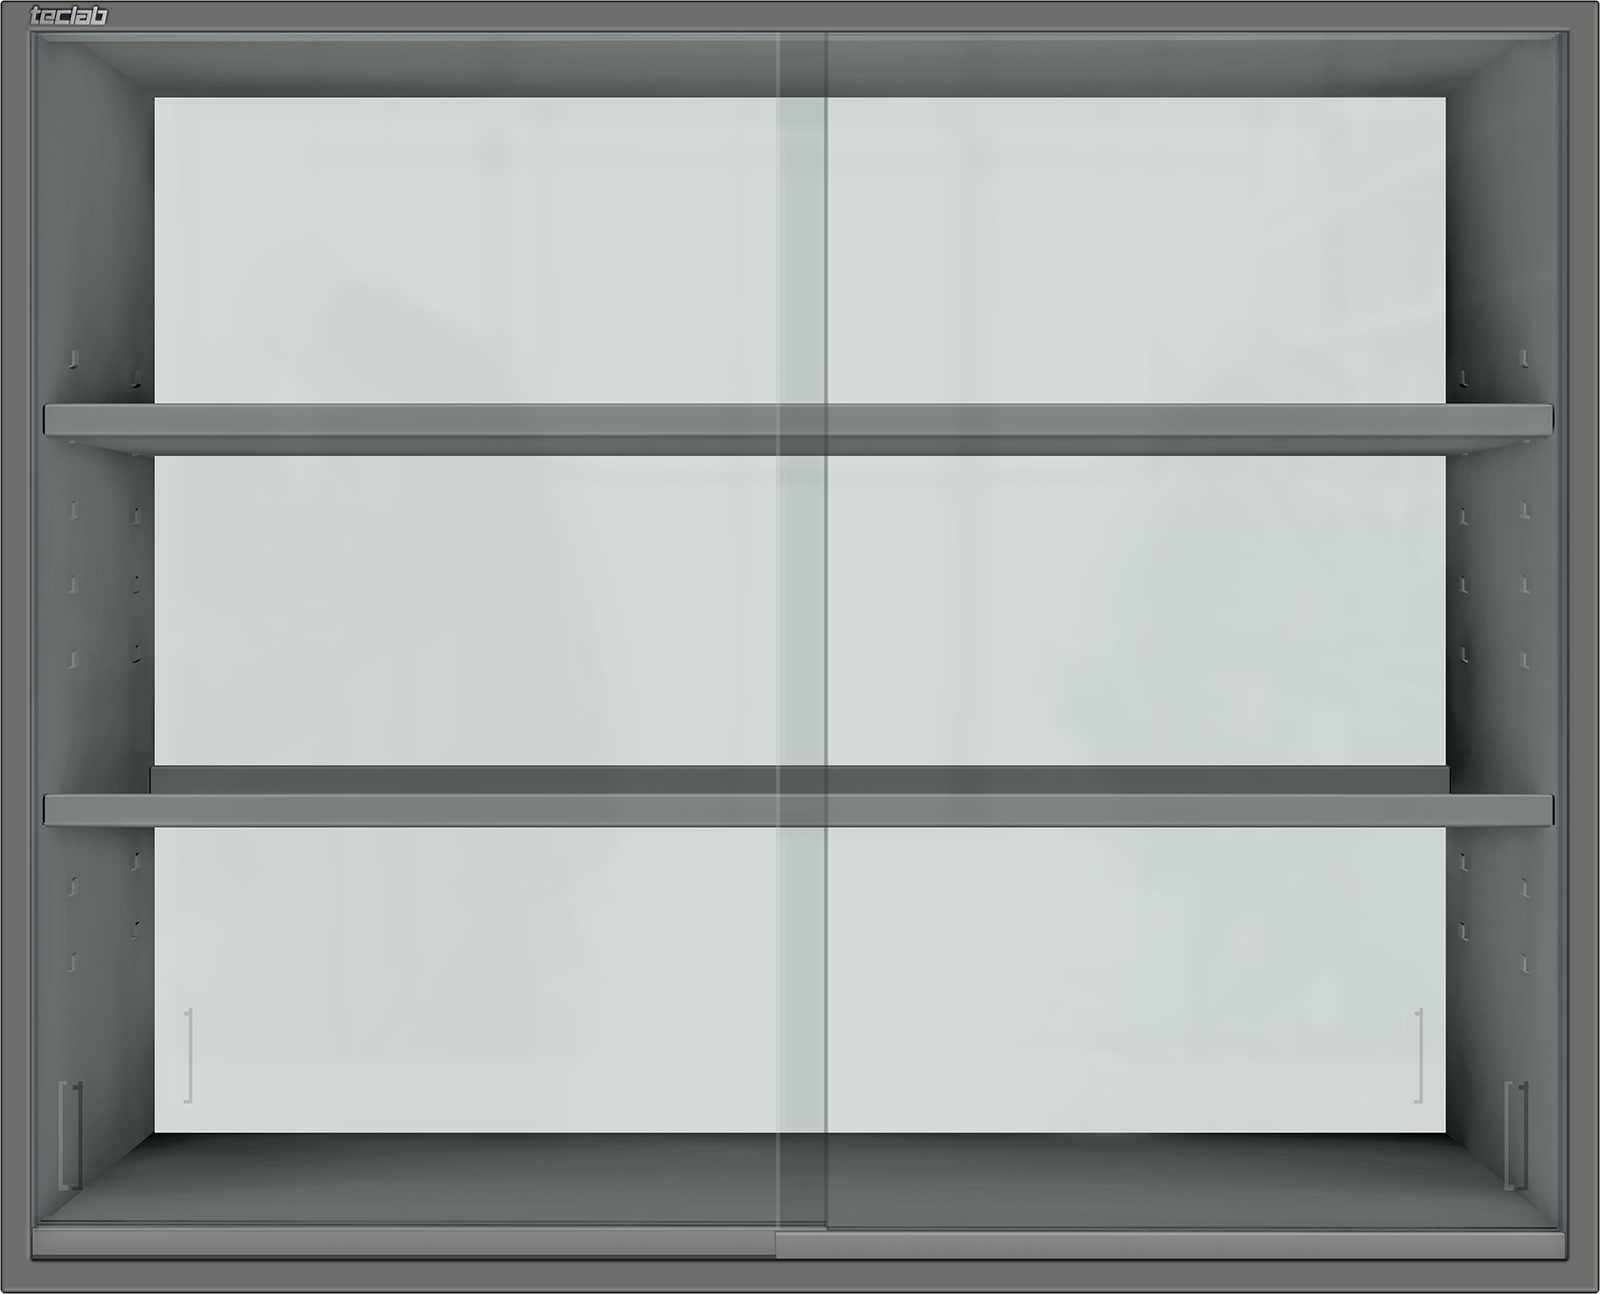 Teclab Wall Cabinet with Sliding Glass Doors